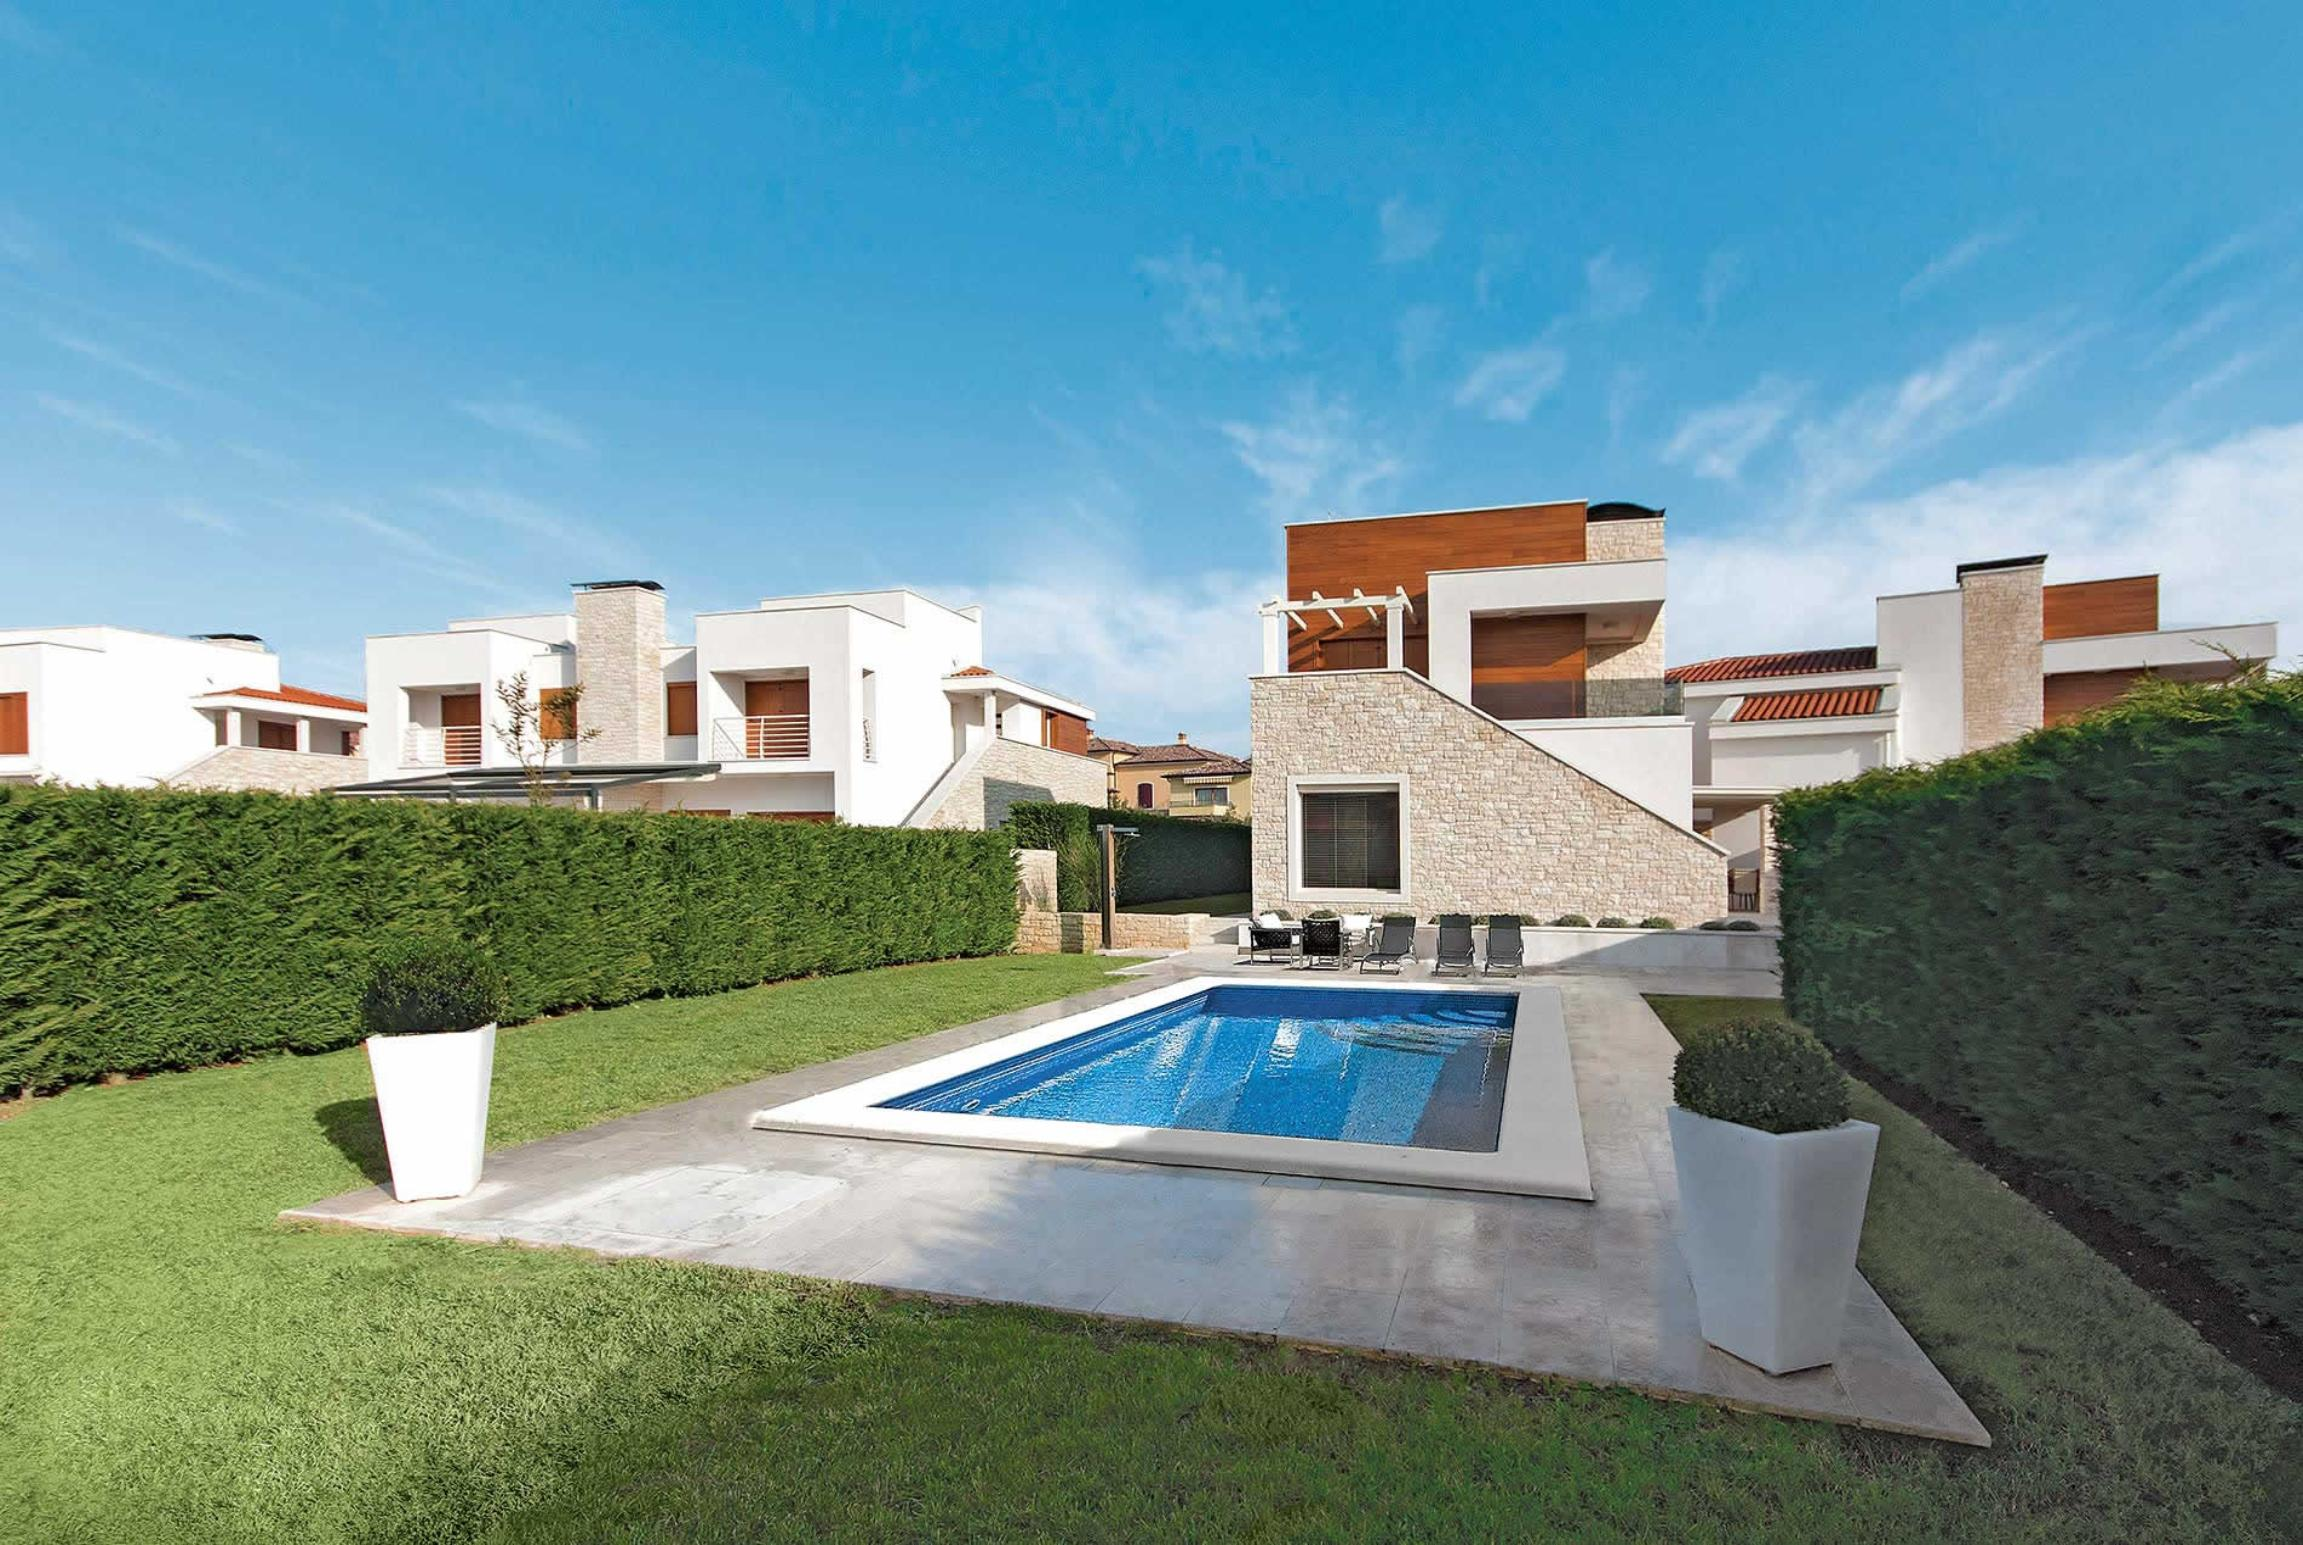 Read more about Speranza villa